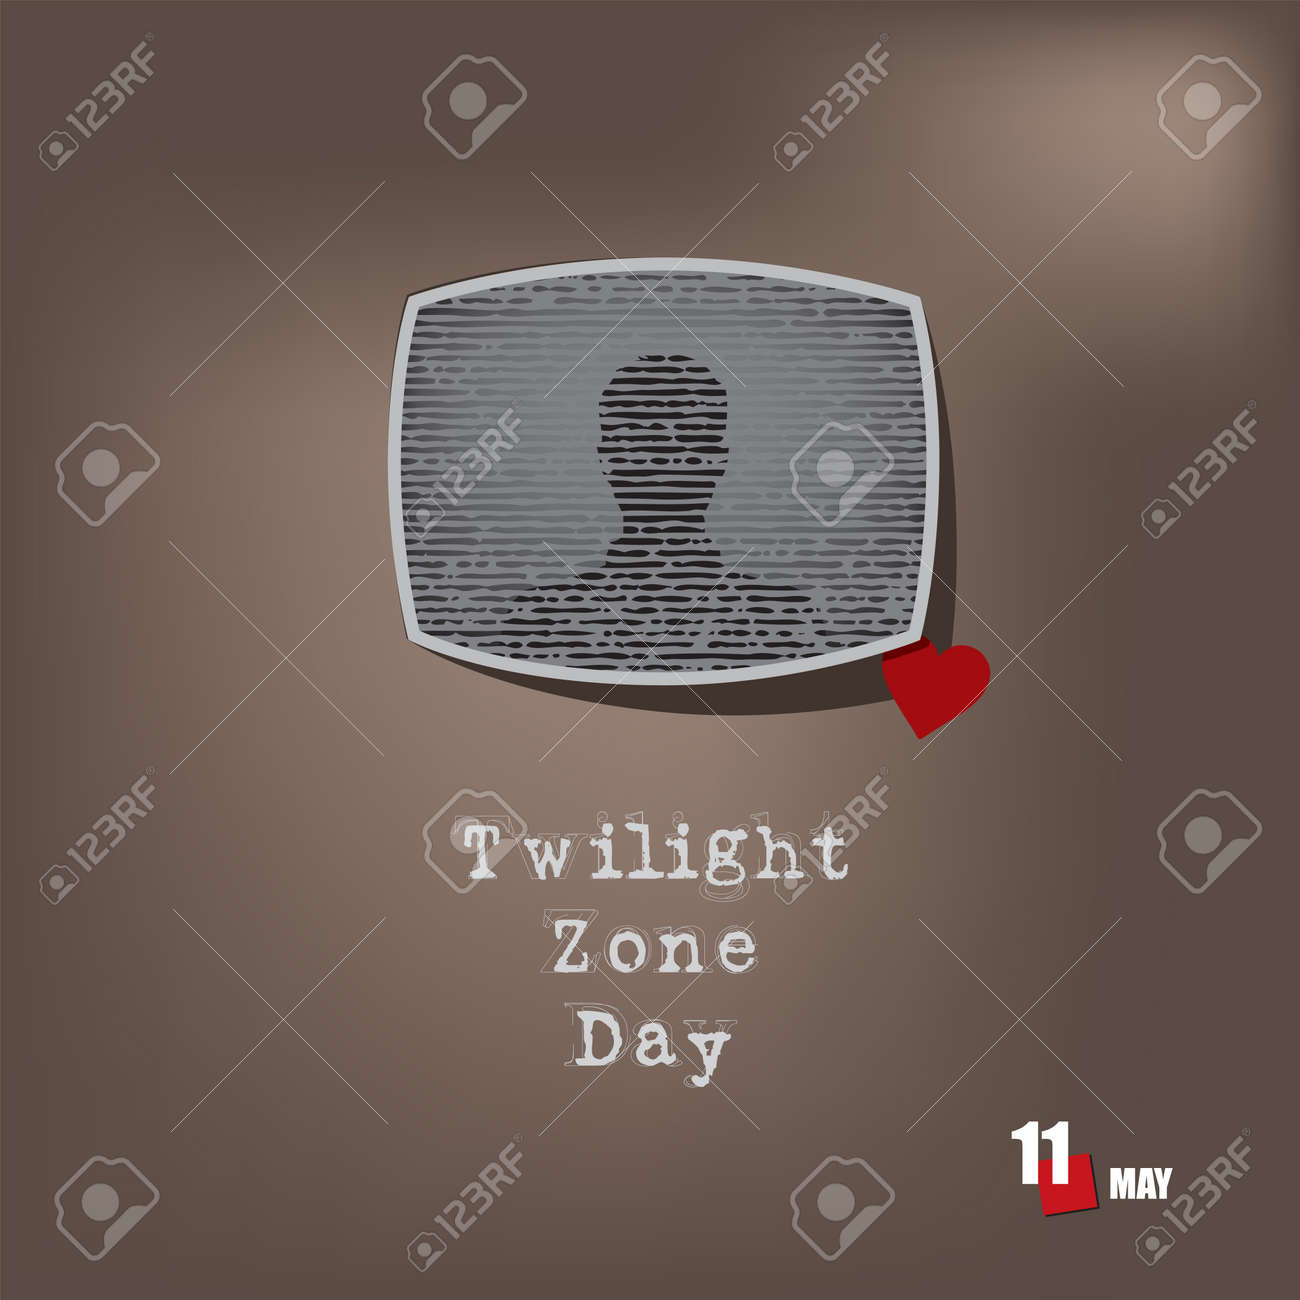 The calendar event is celebrated in may - Twilight Zone Day - 169441838